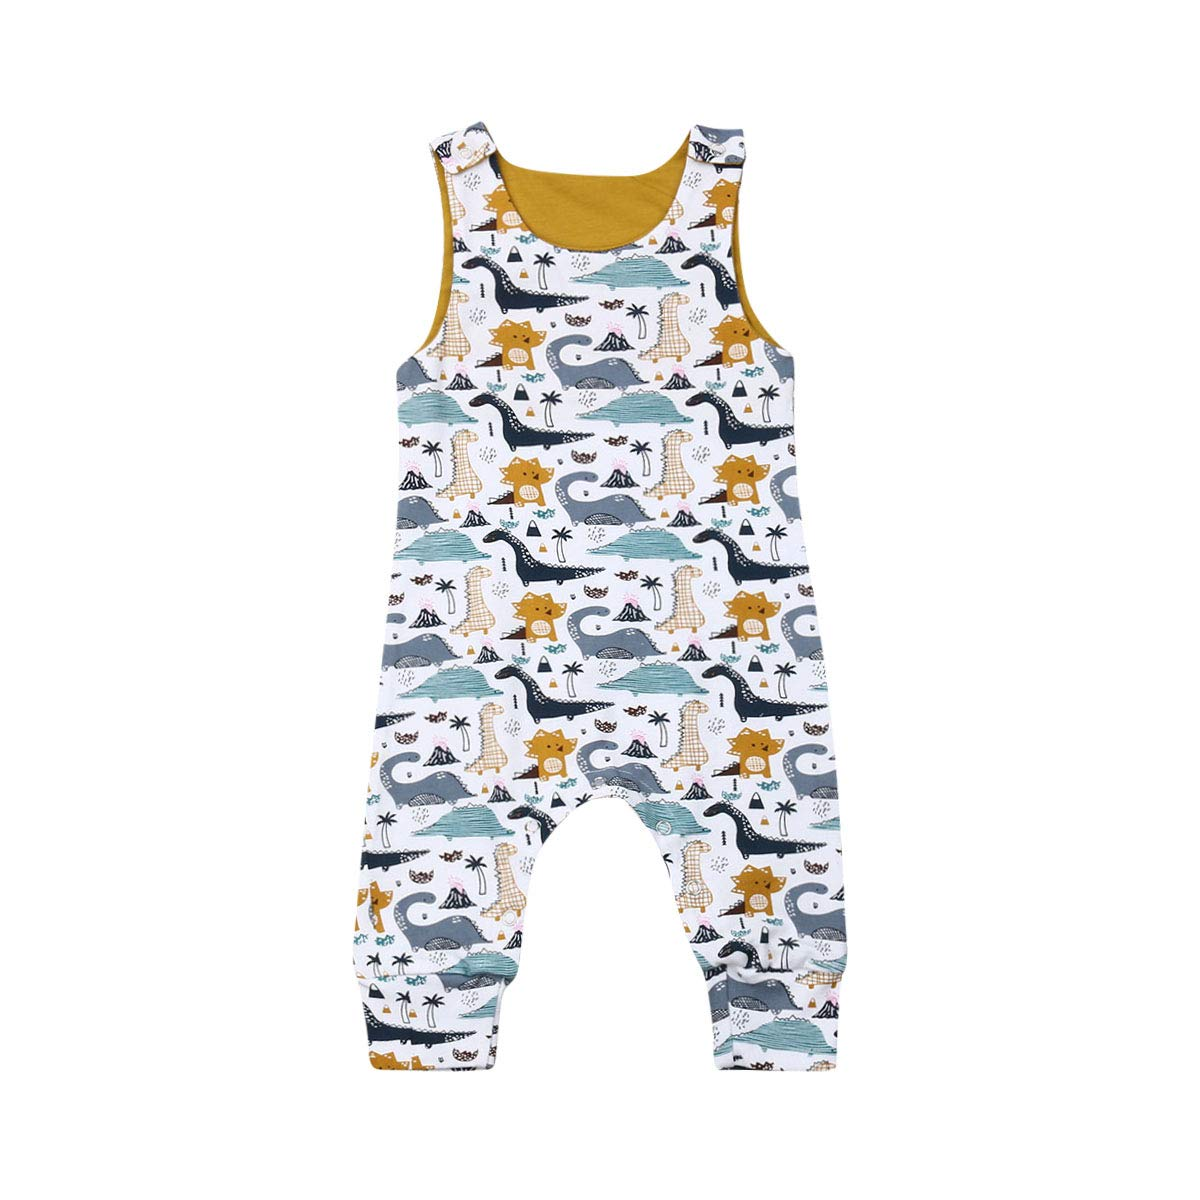 FAROOT Toddlers Baby Boys Sleeveless Cute Dinosaur Print Romper Jumpsuit Summer Bodysuit Shoulder Strap Buttons Outfit